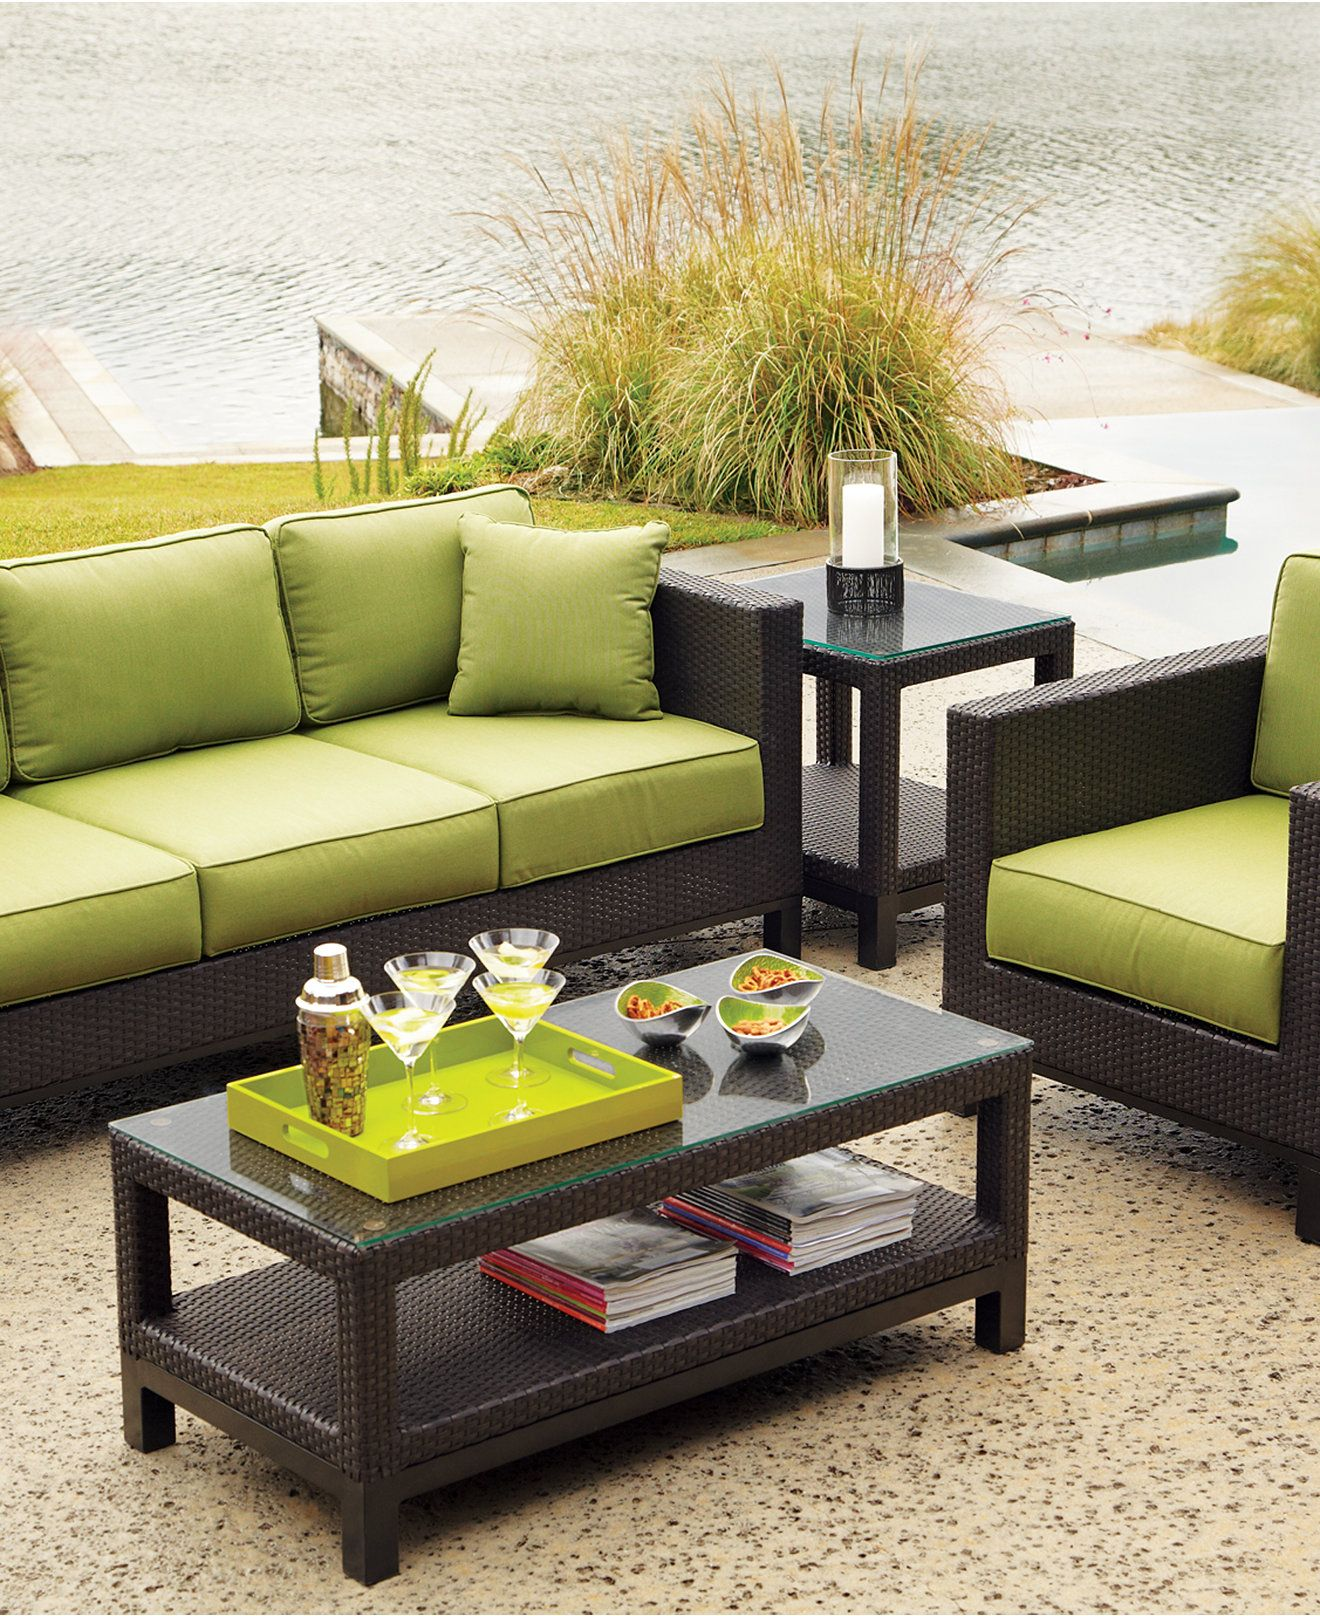 Belize Outdoor Seating Sets Pieces Shop All Outdoor Furniture Macy S Outdoor Seating Set Sectional Patio Furniture Wicker Sectional Patio Furniture